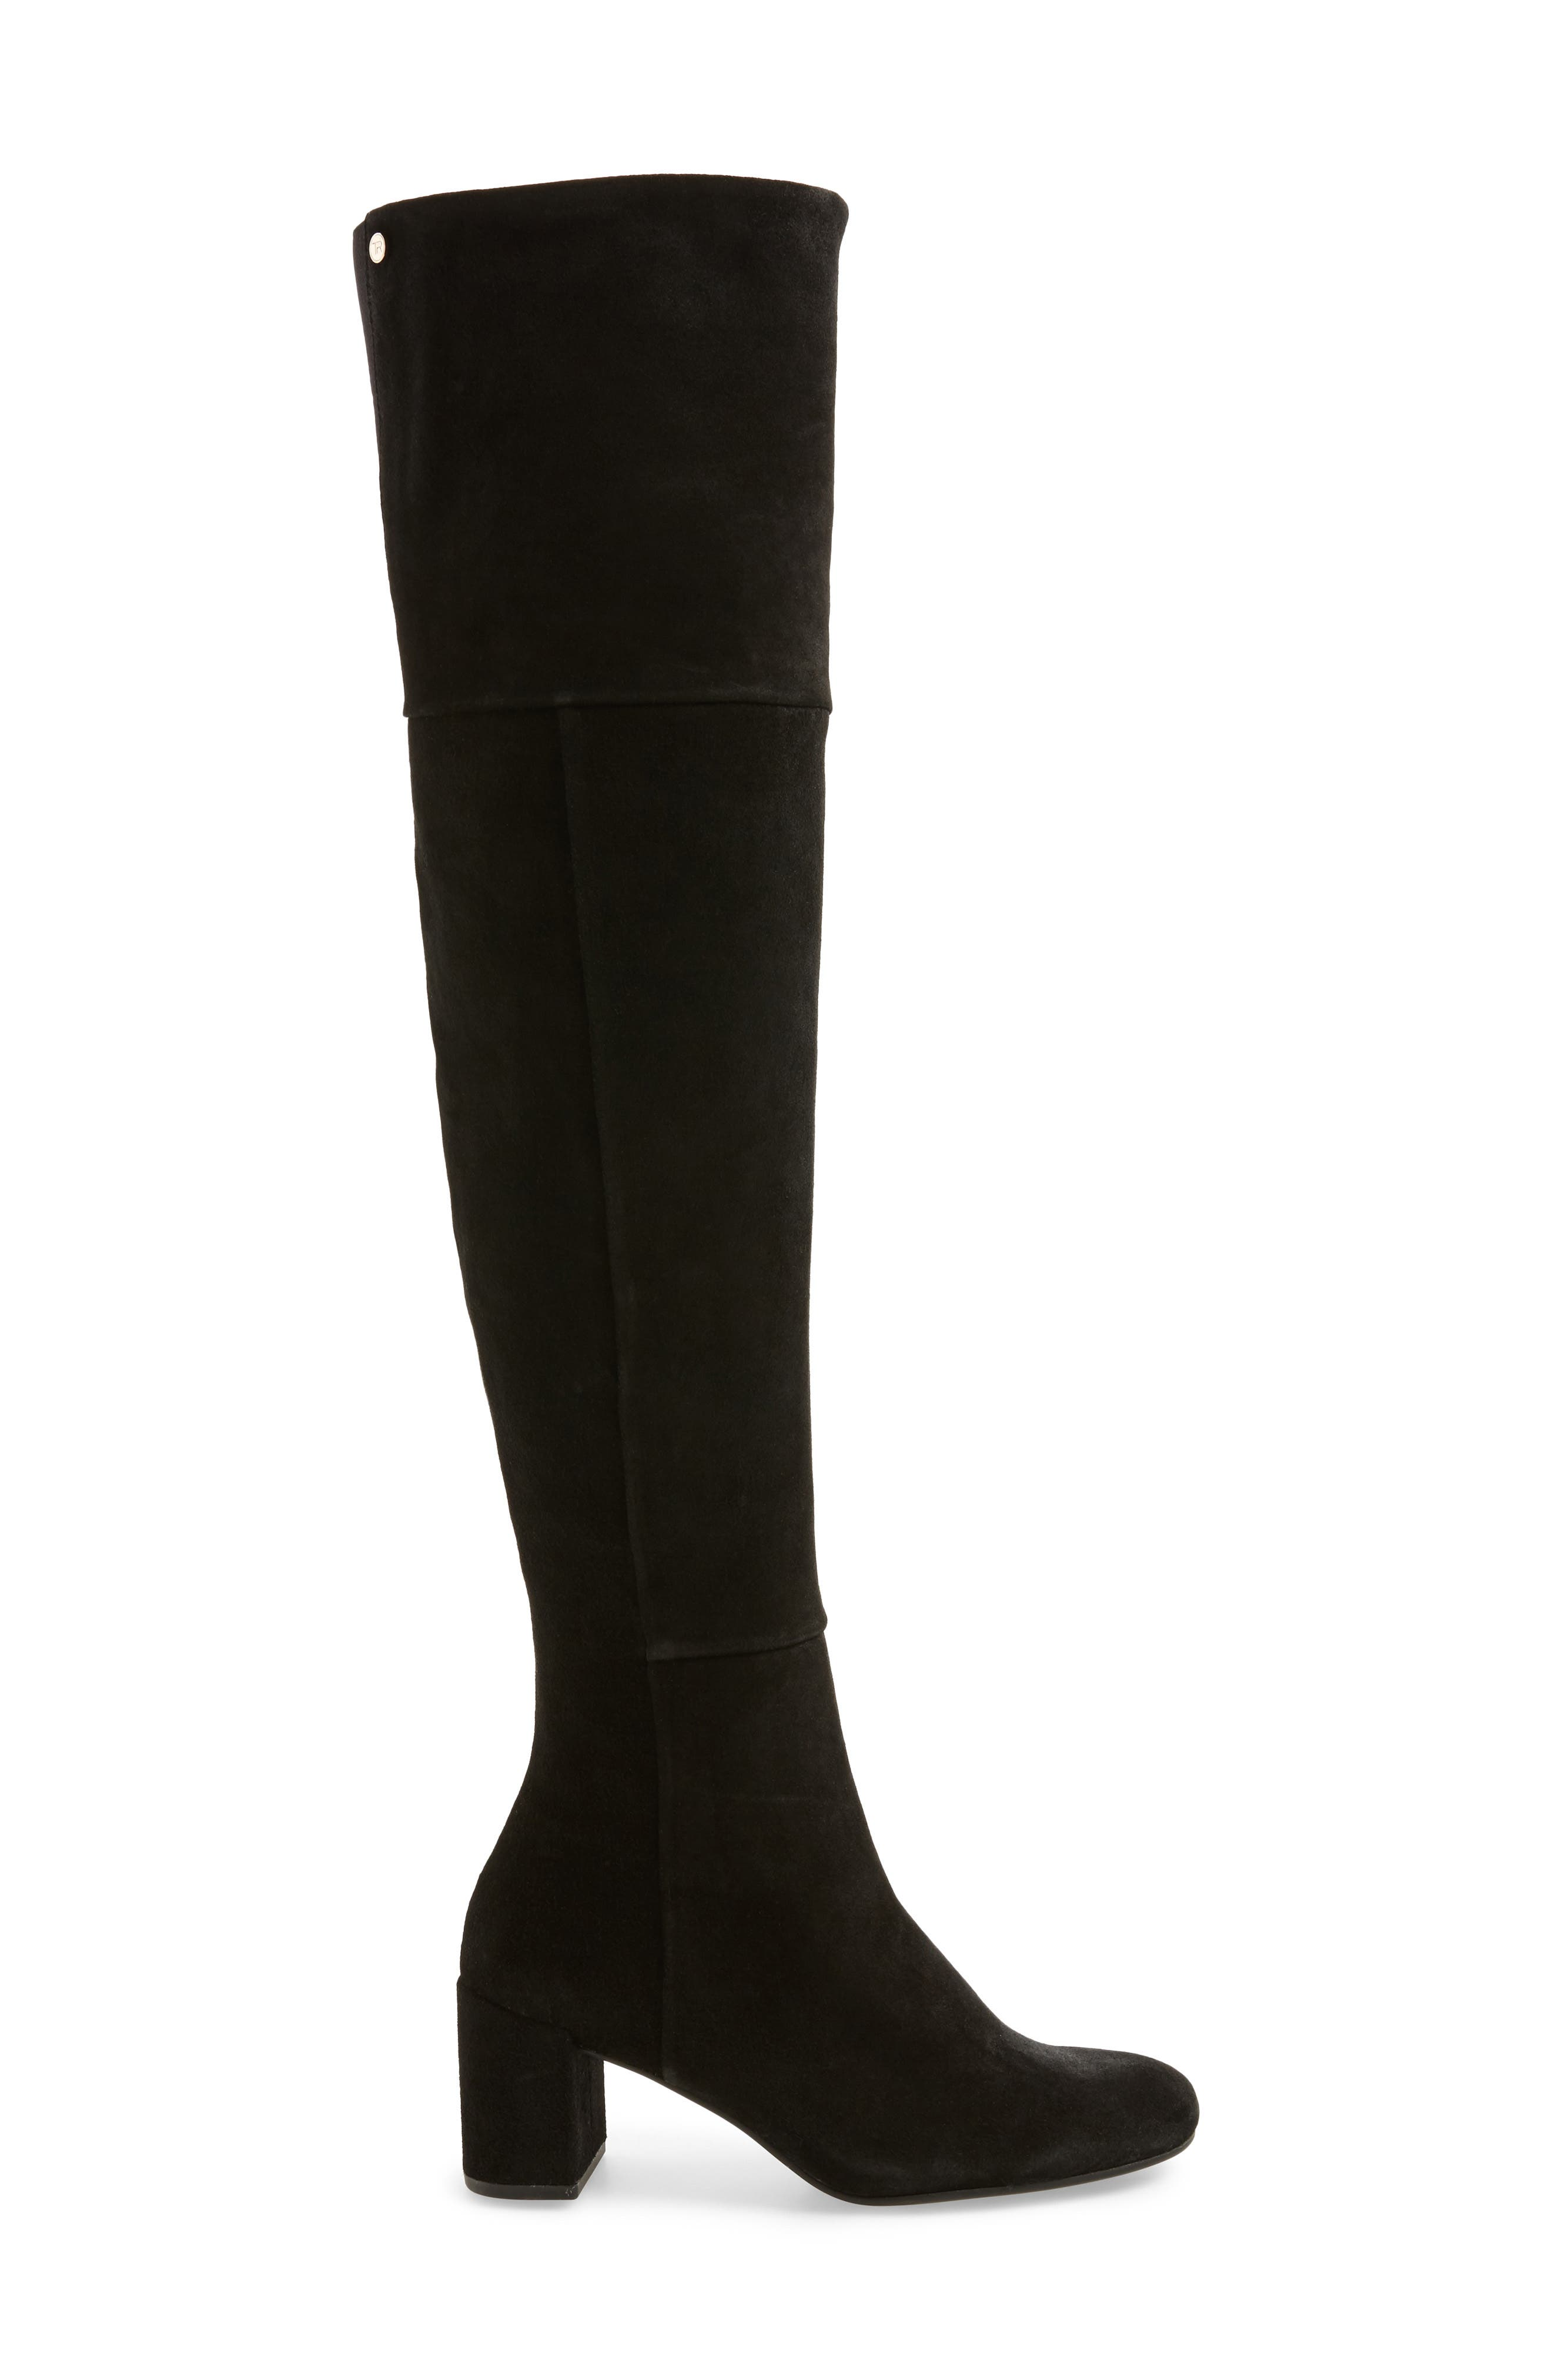 Catherine Over the Knee Boot,                             Alternate thumbnail 3, color,                             004